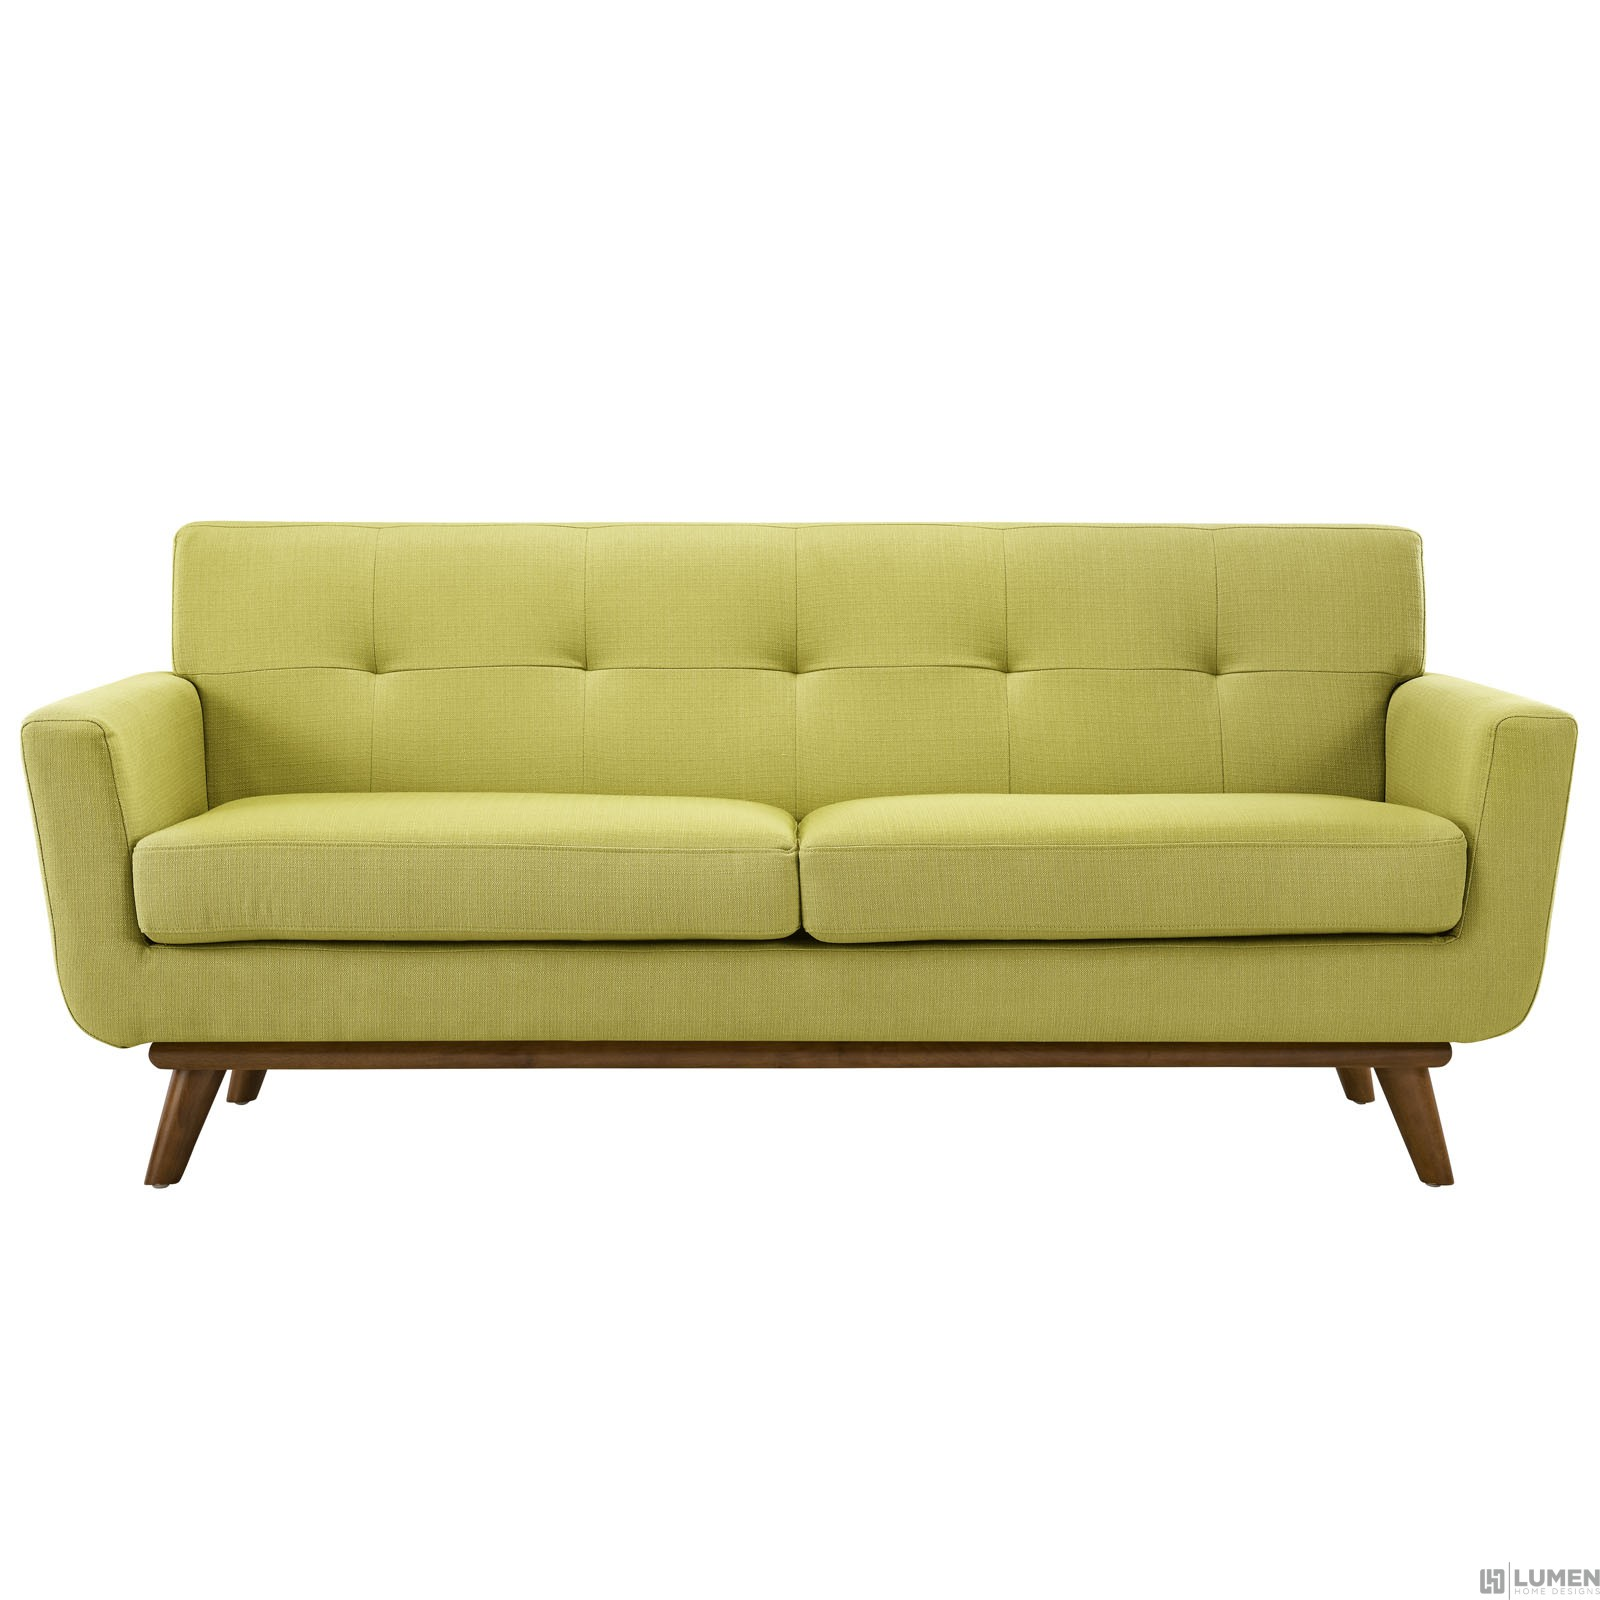 LHD-1179-WHE-Loveseat